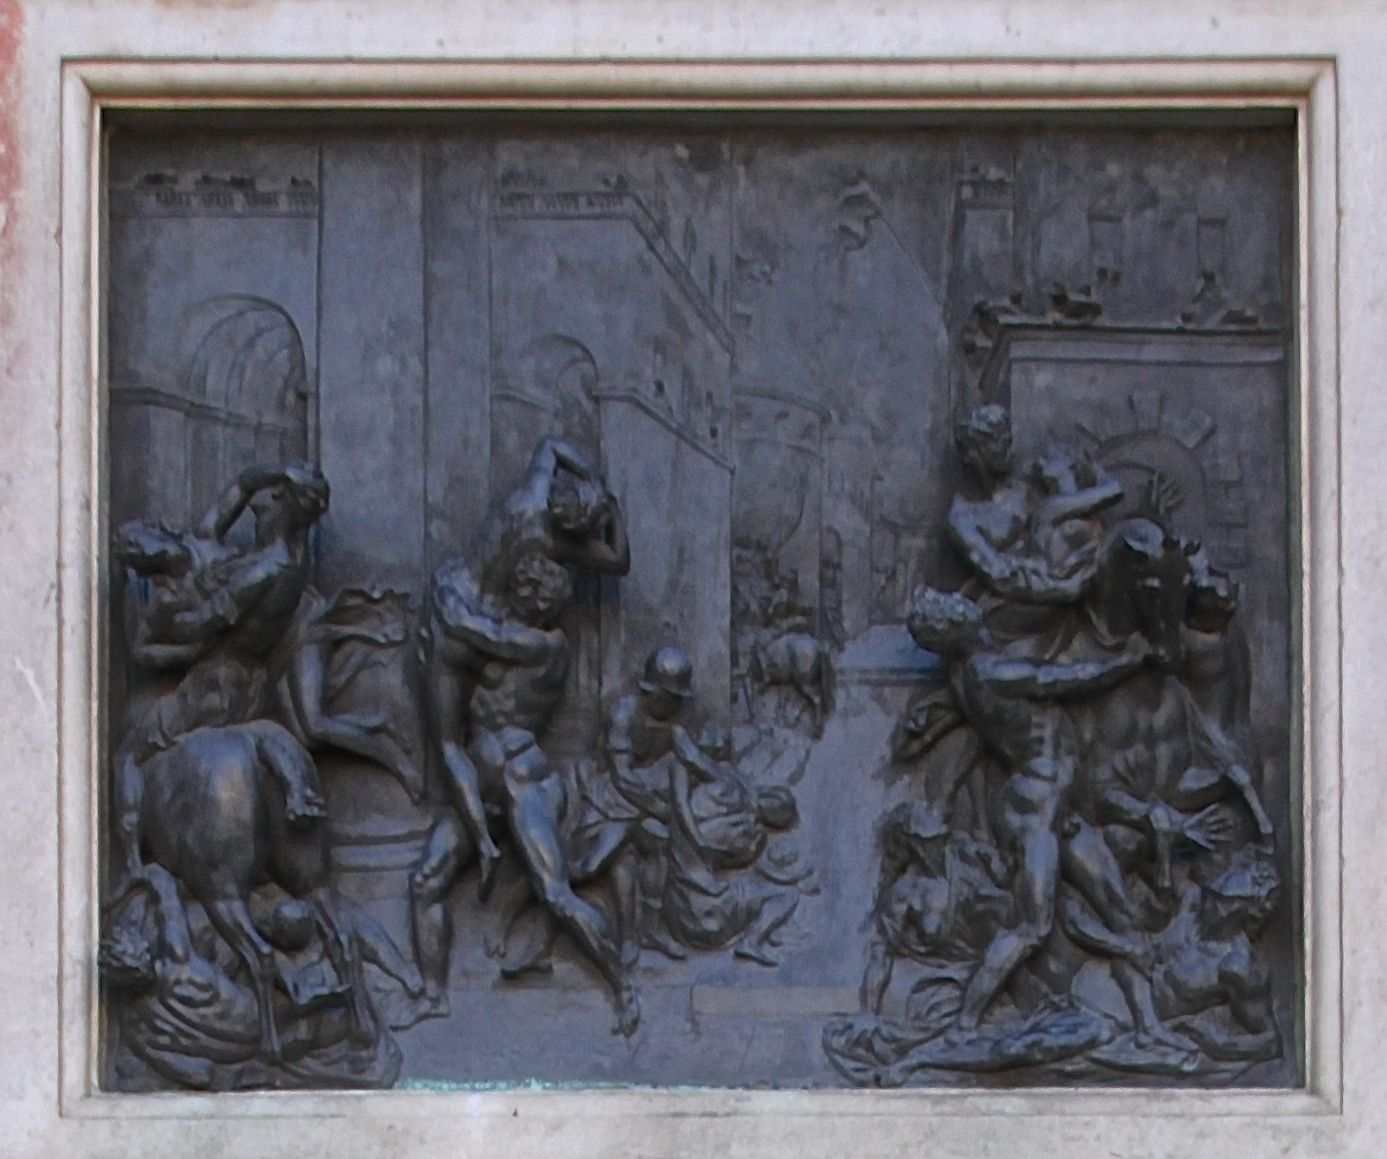 Bronze plaque around the base of the statue